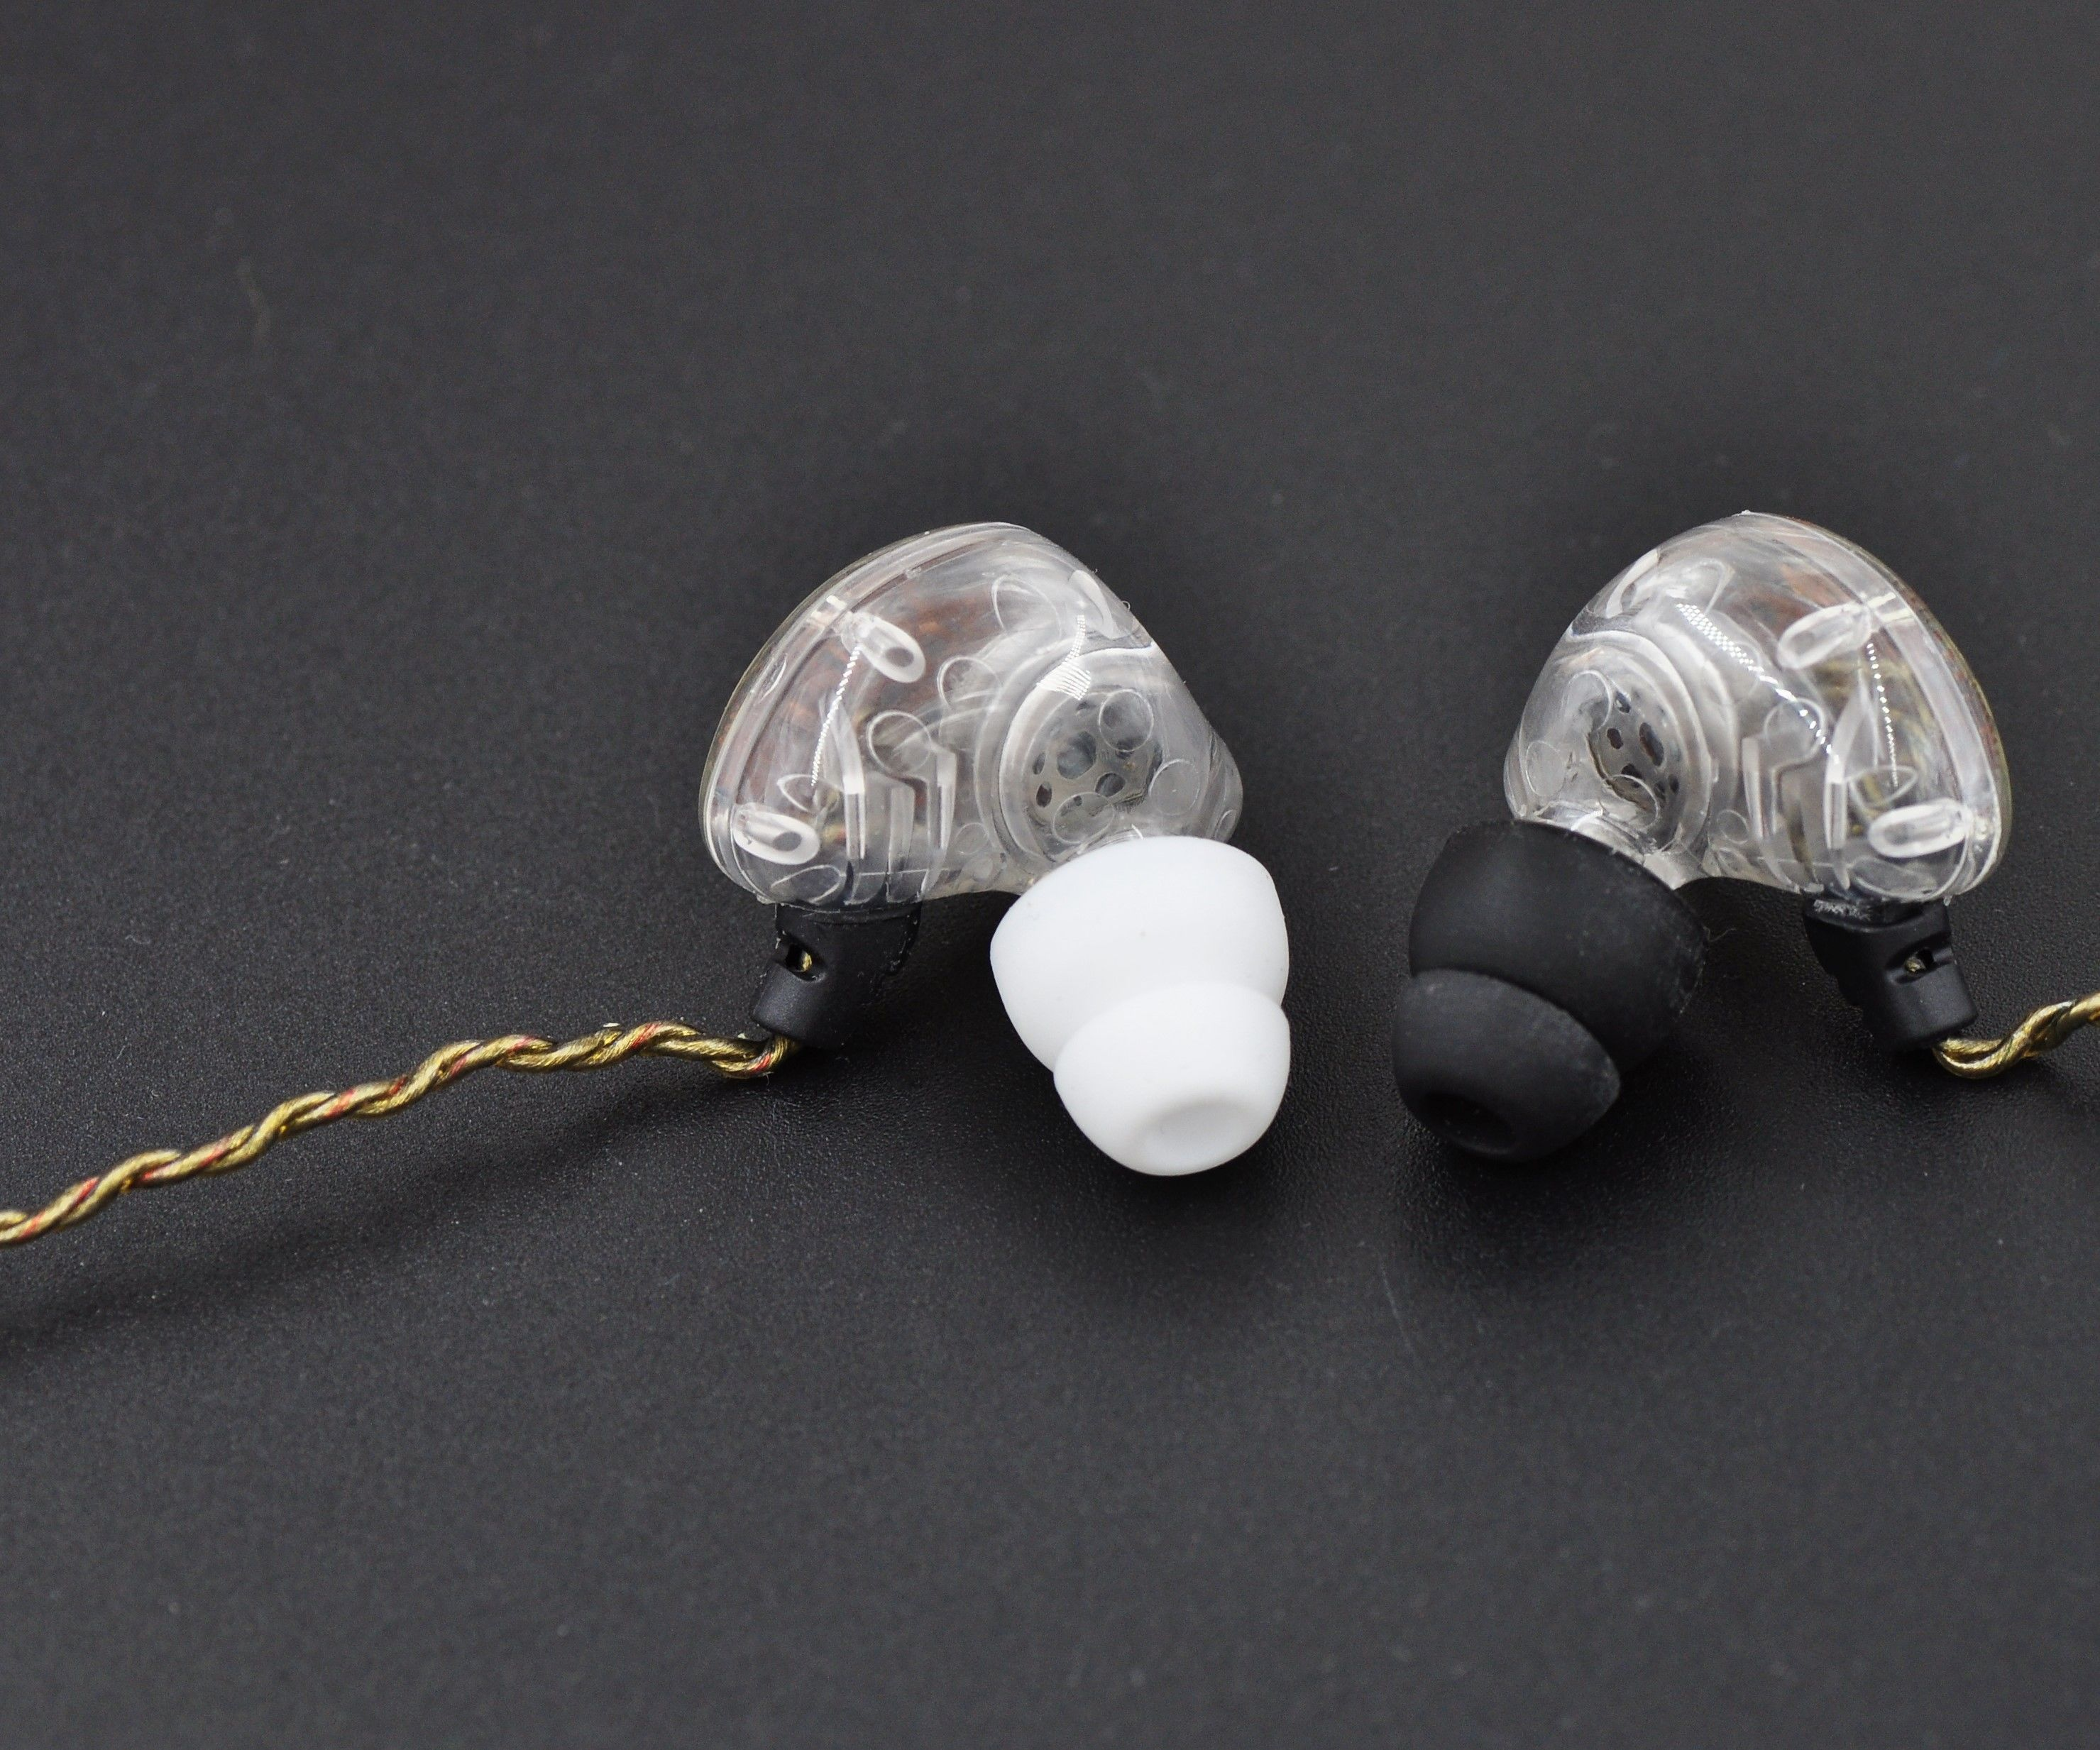 Make a Sound Isolation Earphone With Sennheiser IE80 Drivers